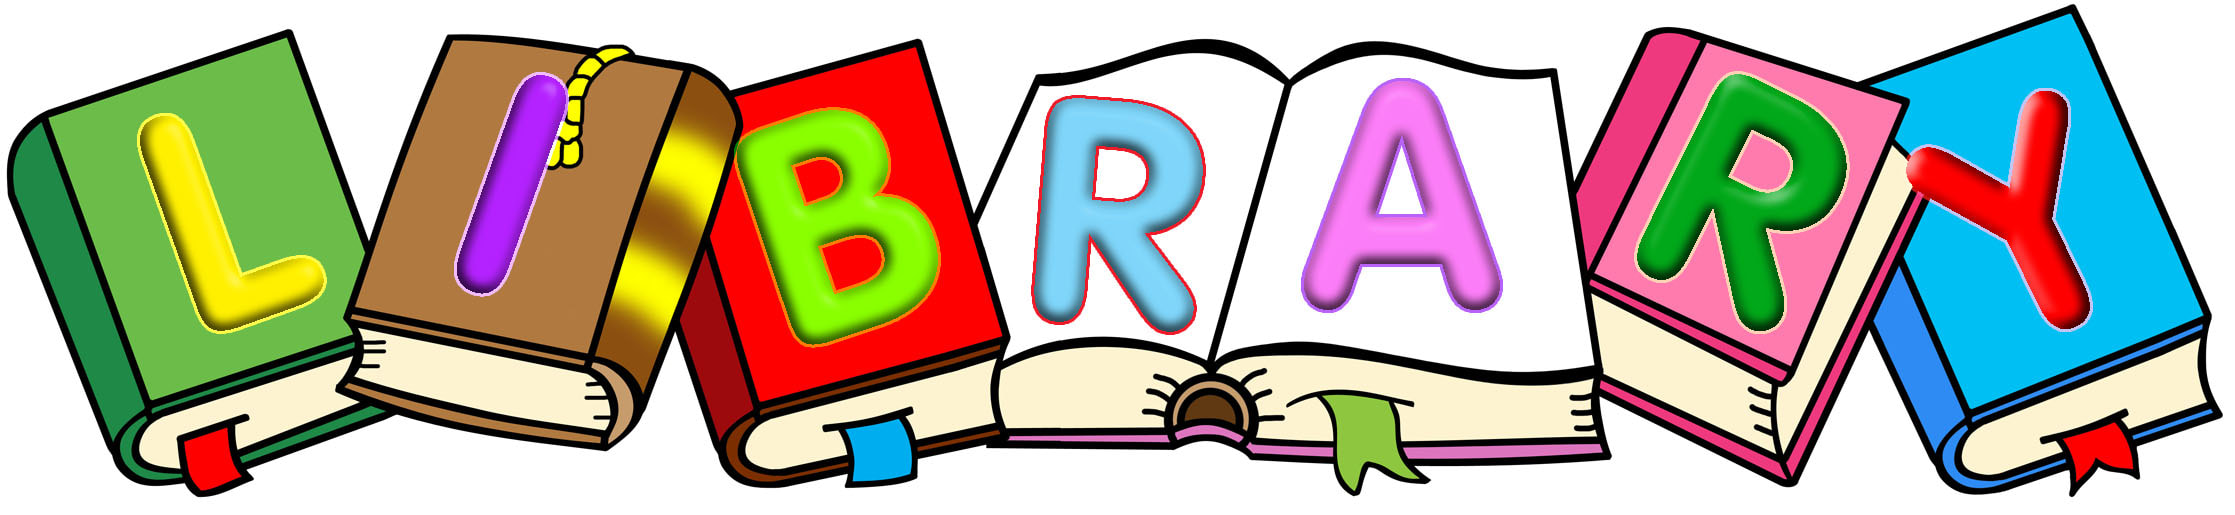 media center clip art image collections